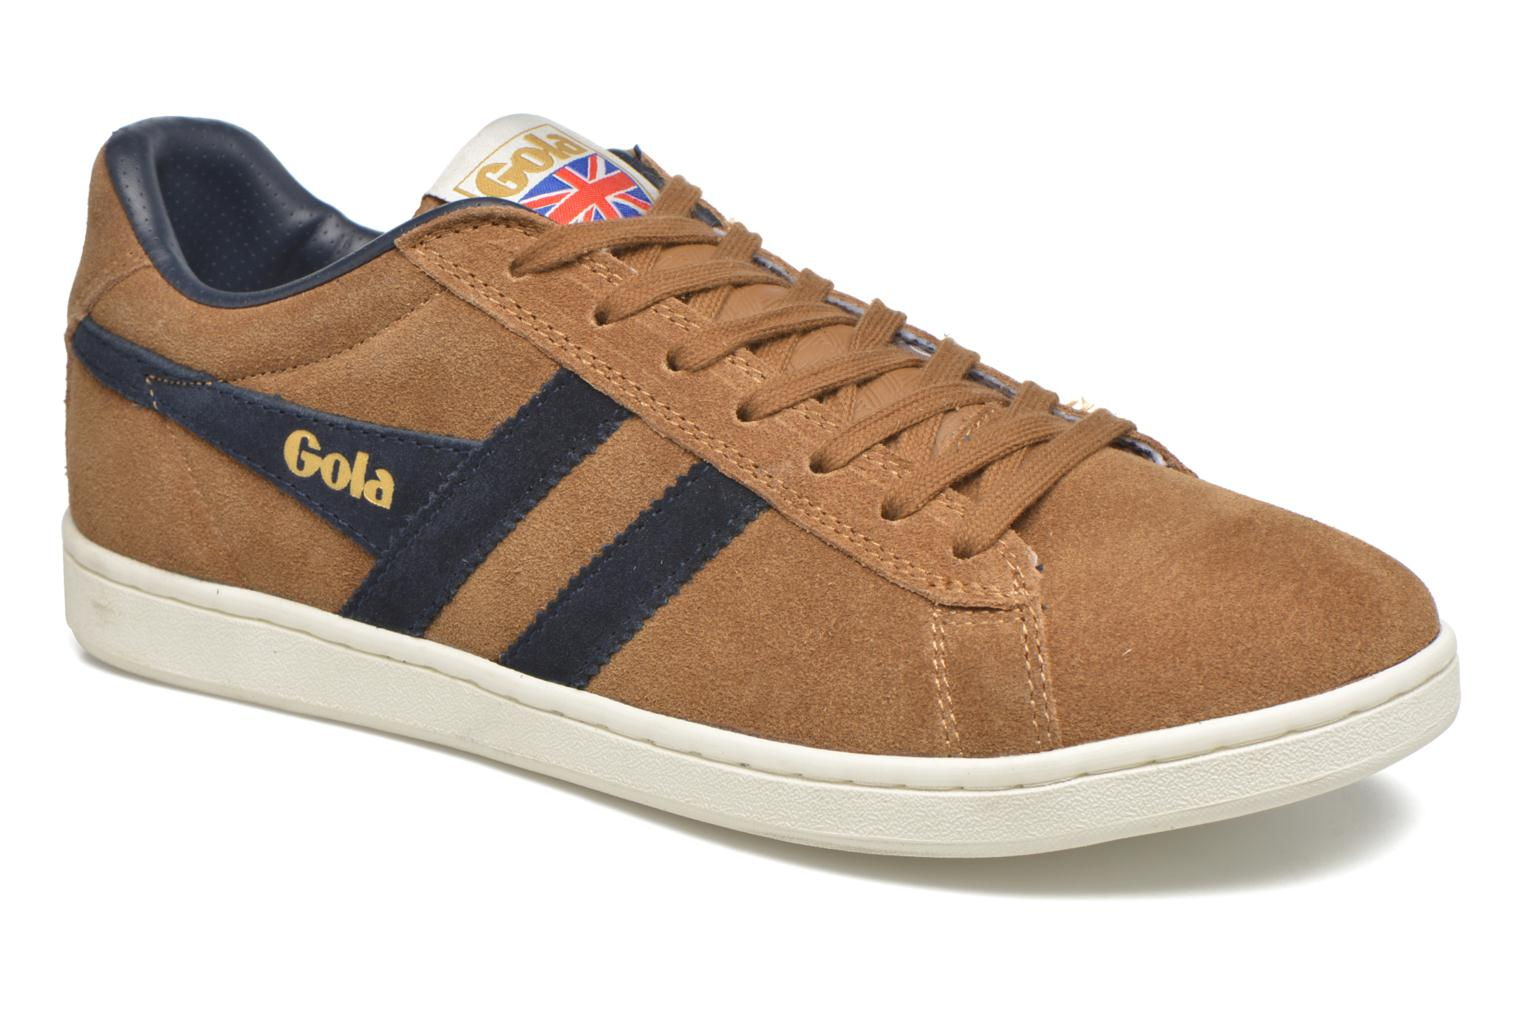 Sneakers Equipe Suede by Gola